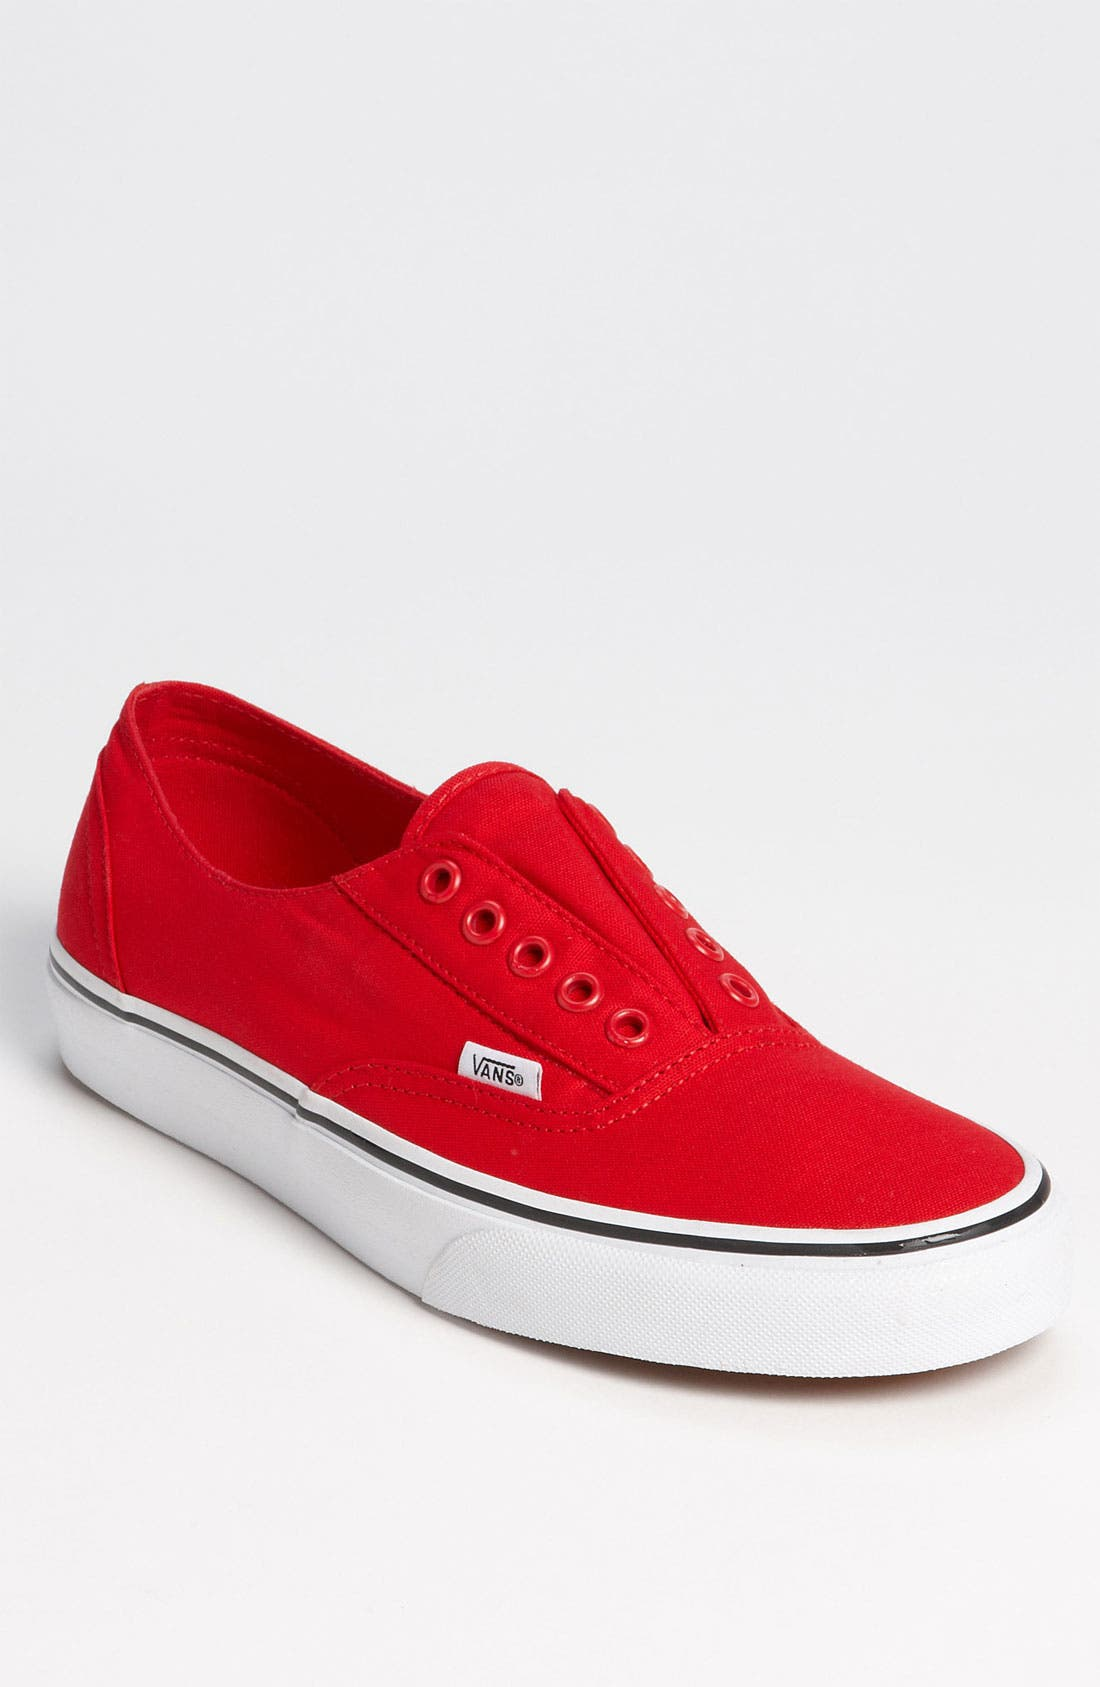 Alternate Image 1 Selected - Vans 'Era Laceless' Sneaker (Men)